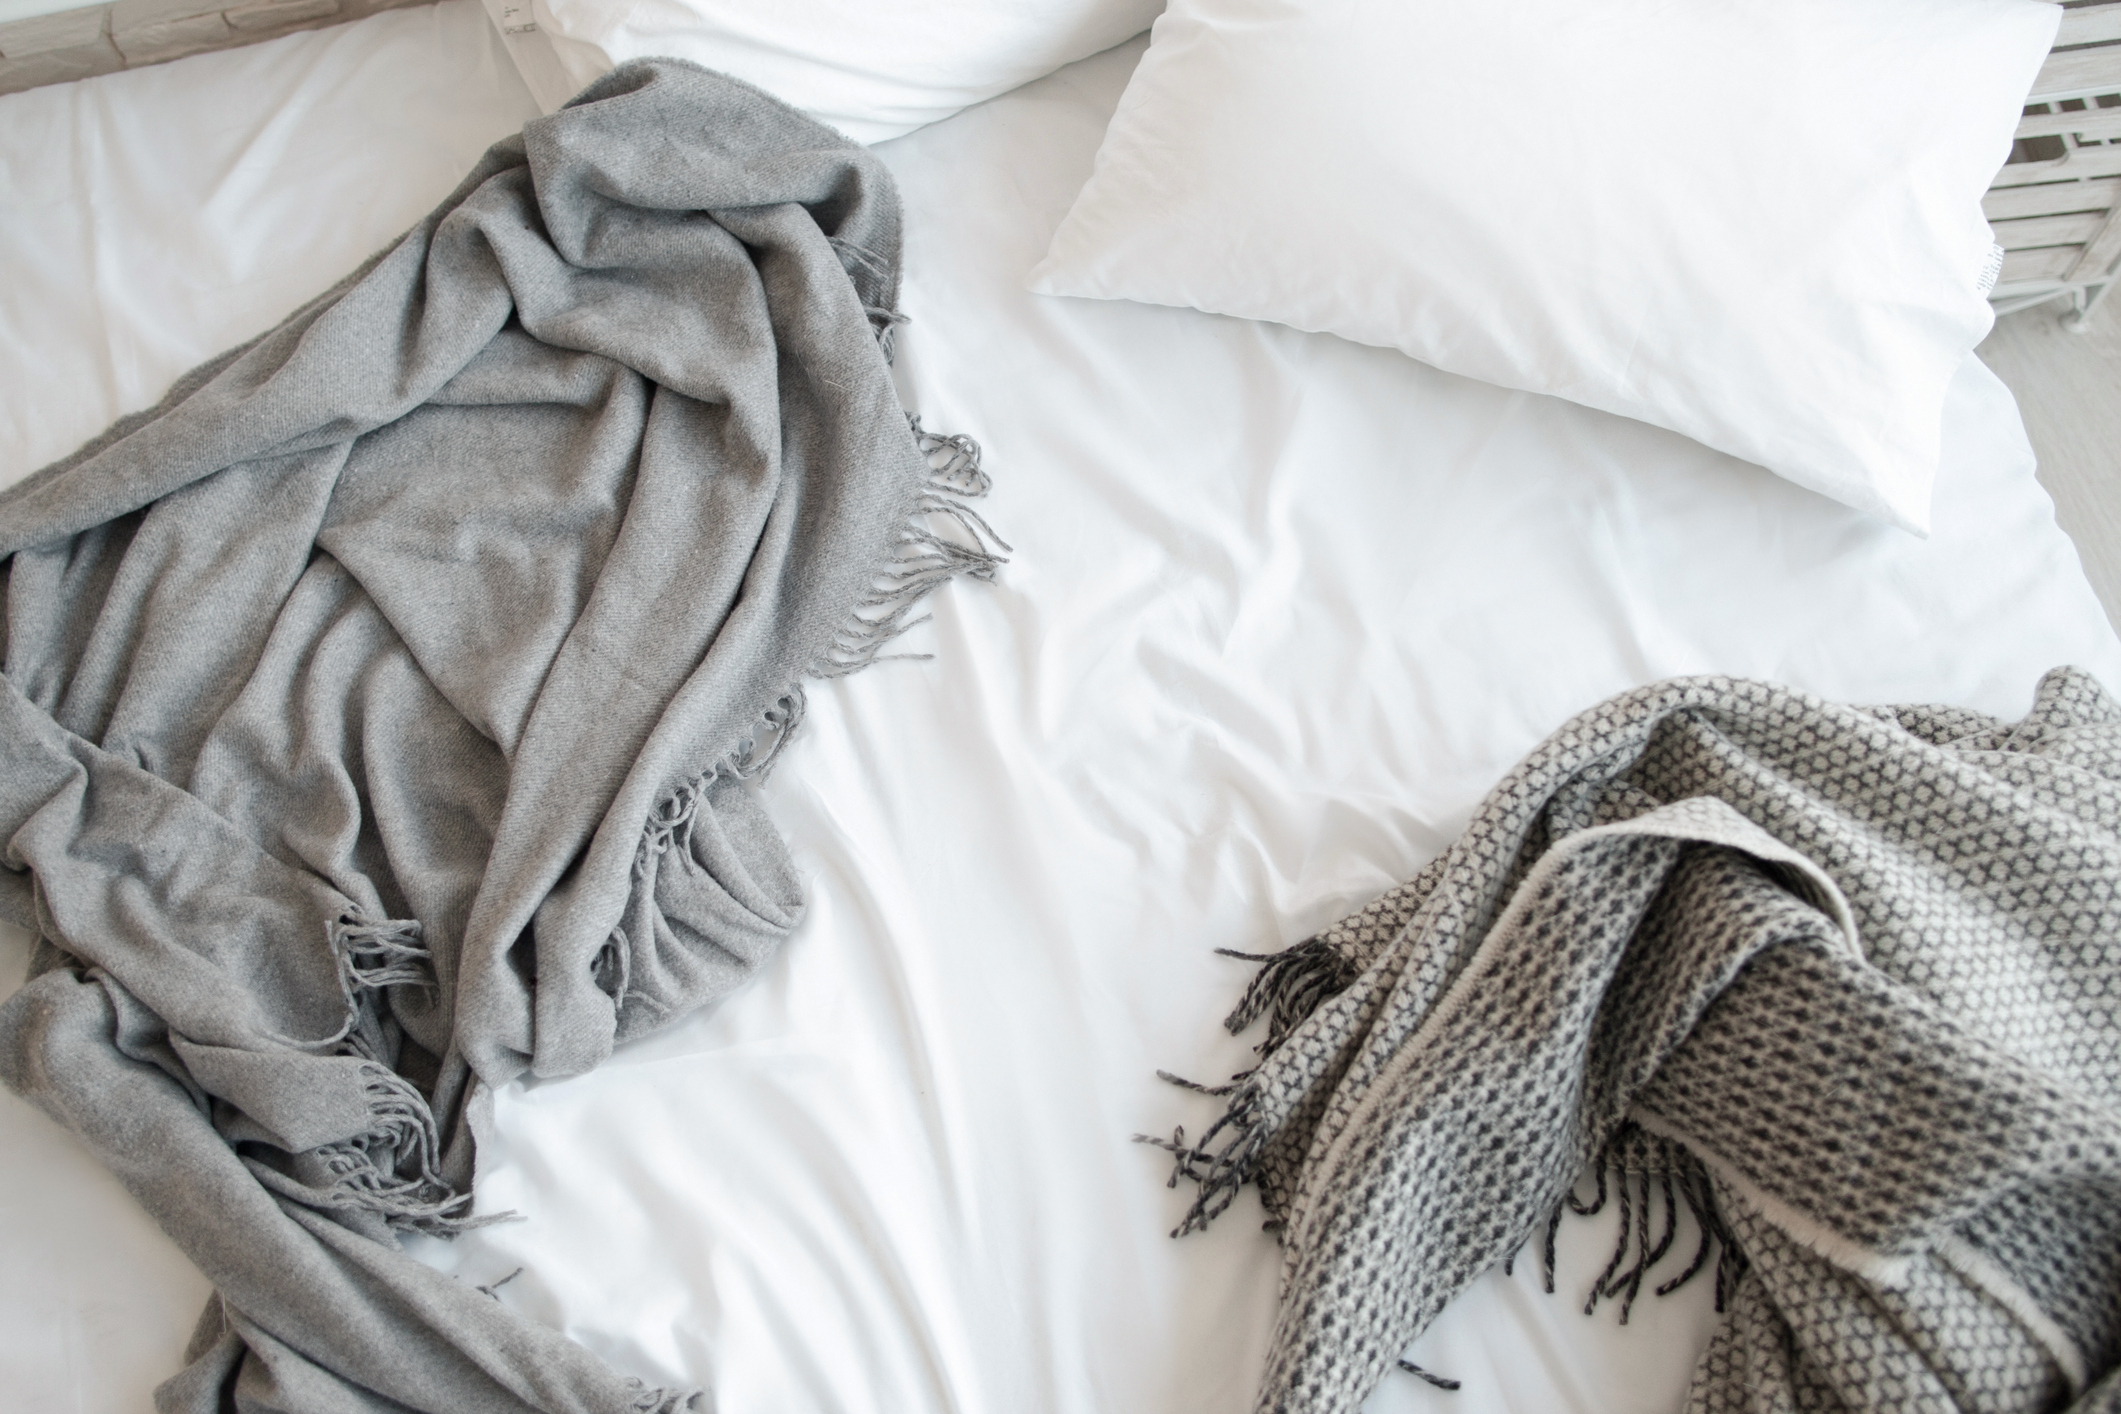 Messy bed with blanket and pillows